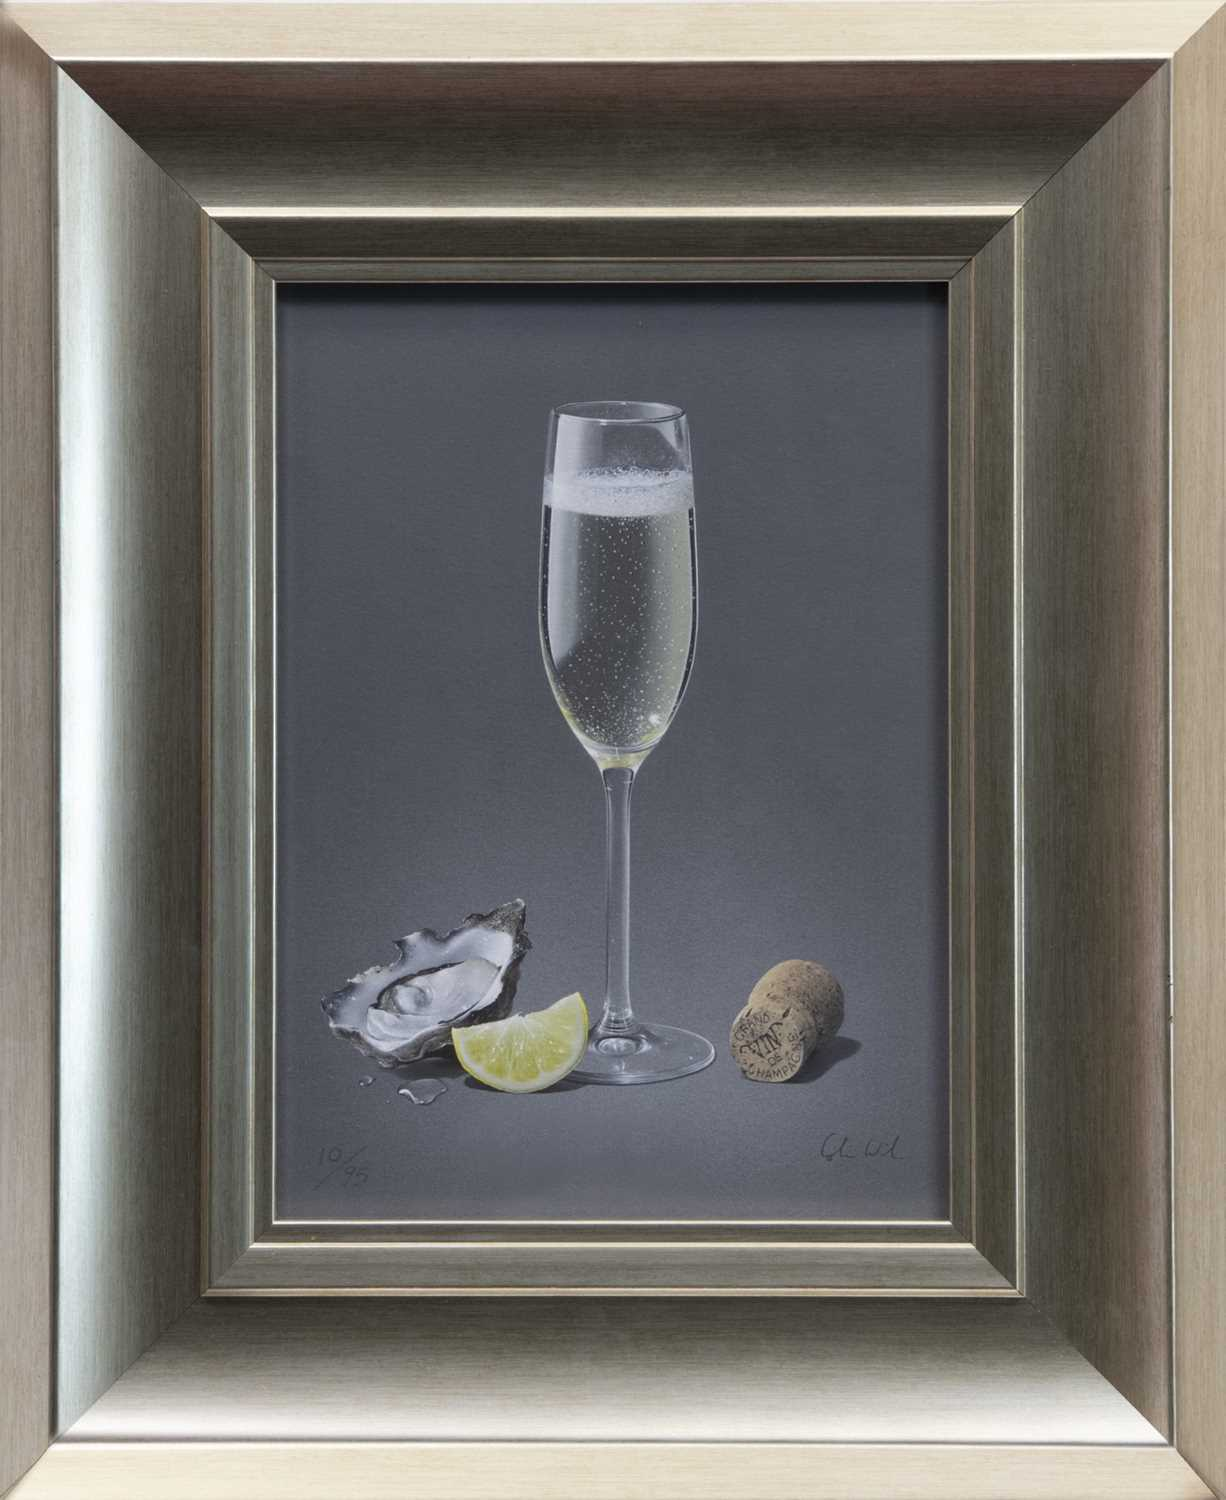 Lot 121 - CHAMPAGNE & OYSTER, A GICLEE PRINT BY COLIN WILSON